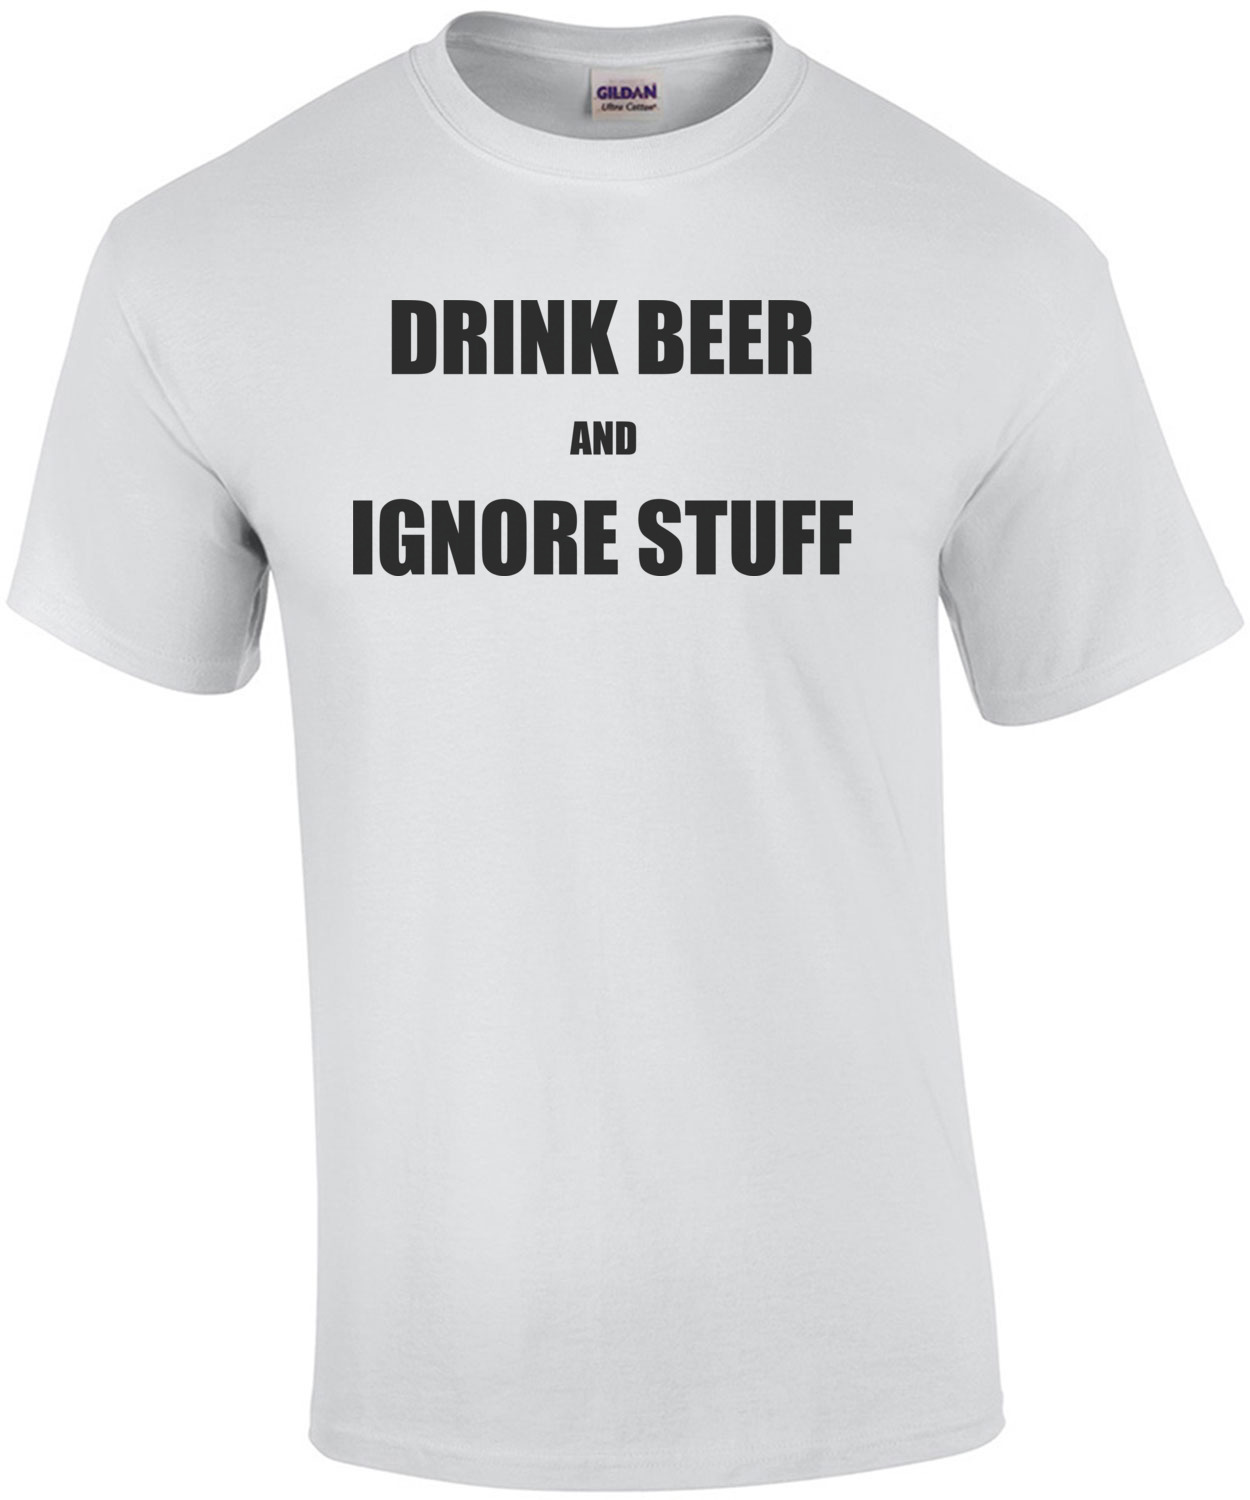 Drink Beer And Ignore Stuff Drinking Shirt 3p